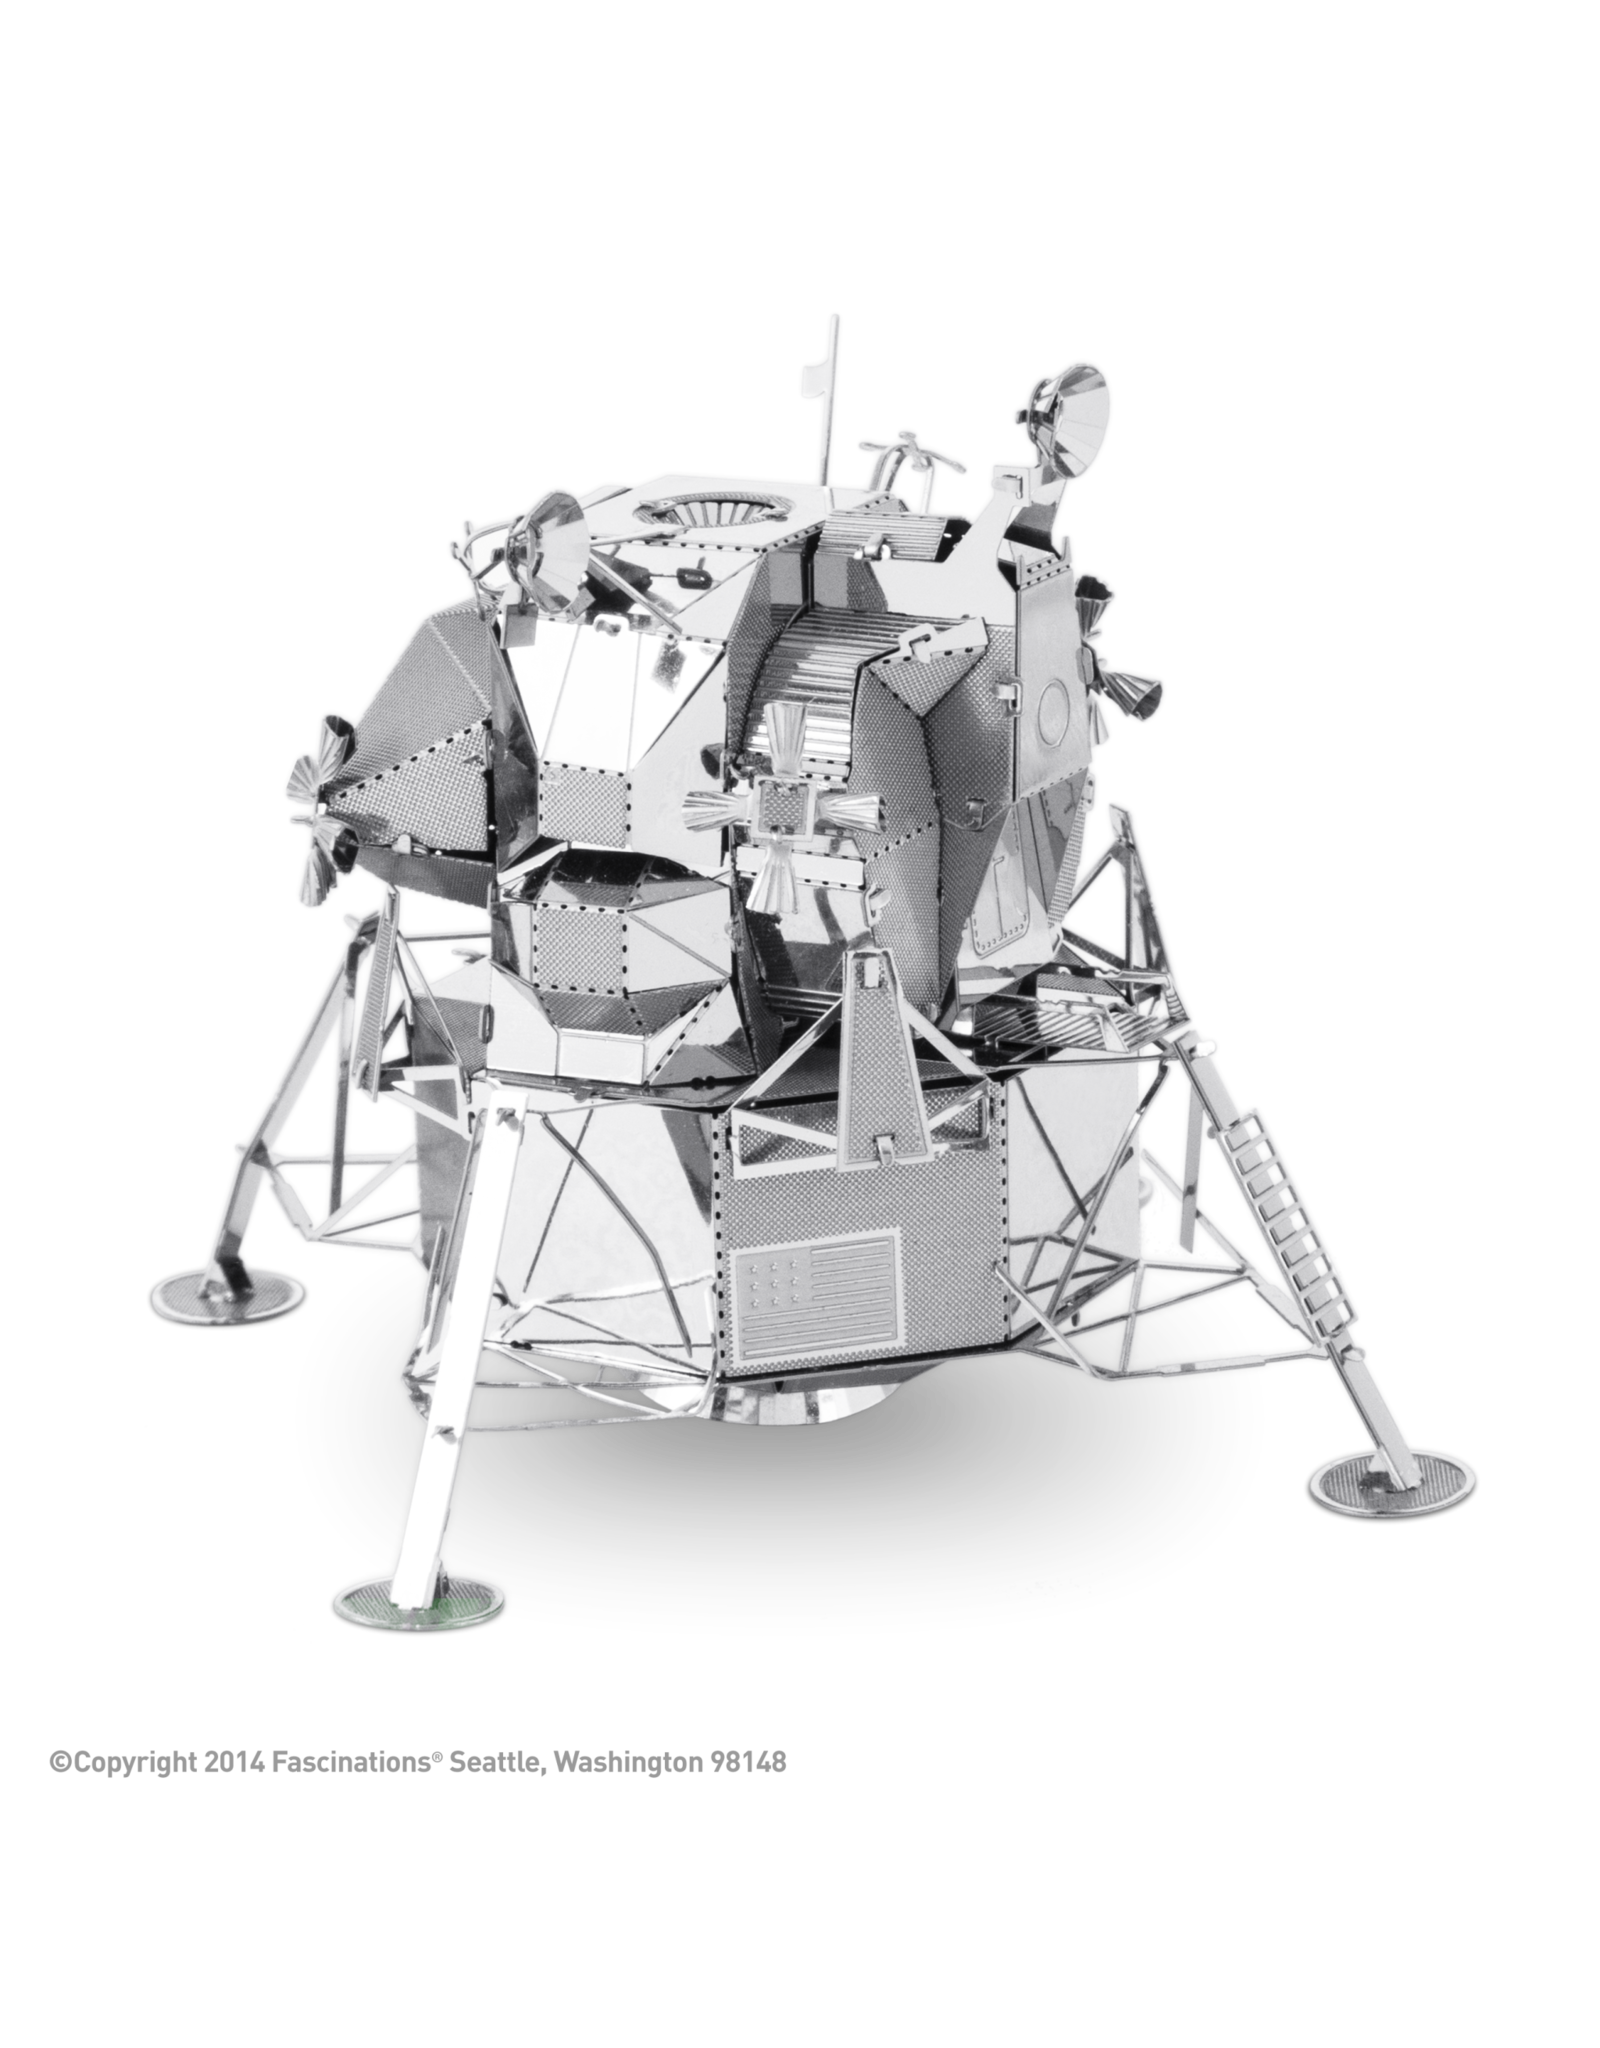 Facinations Apollo Lunar Module